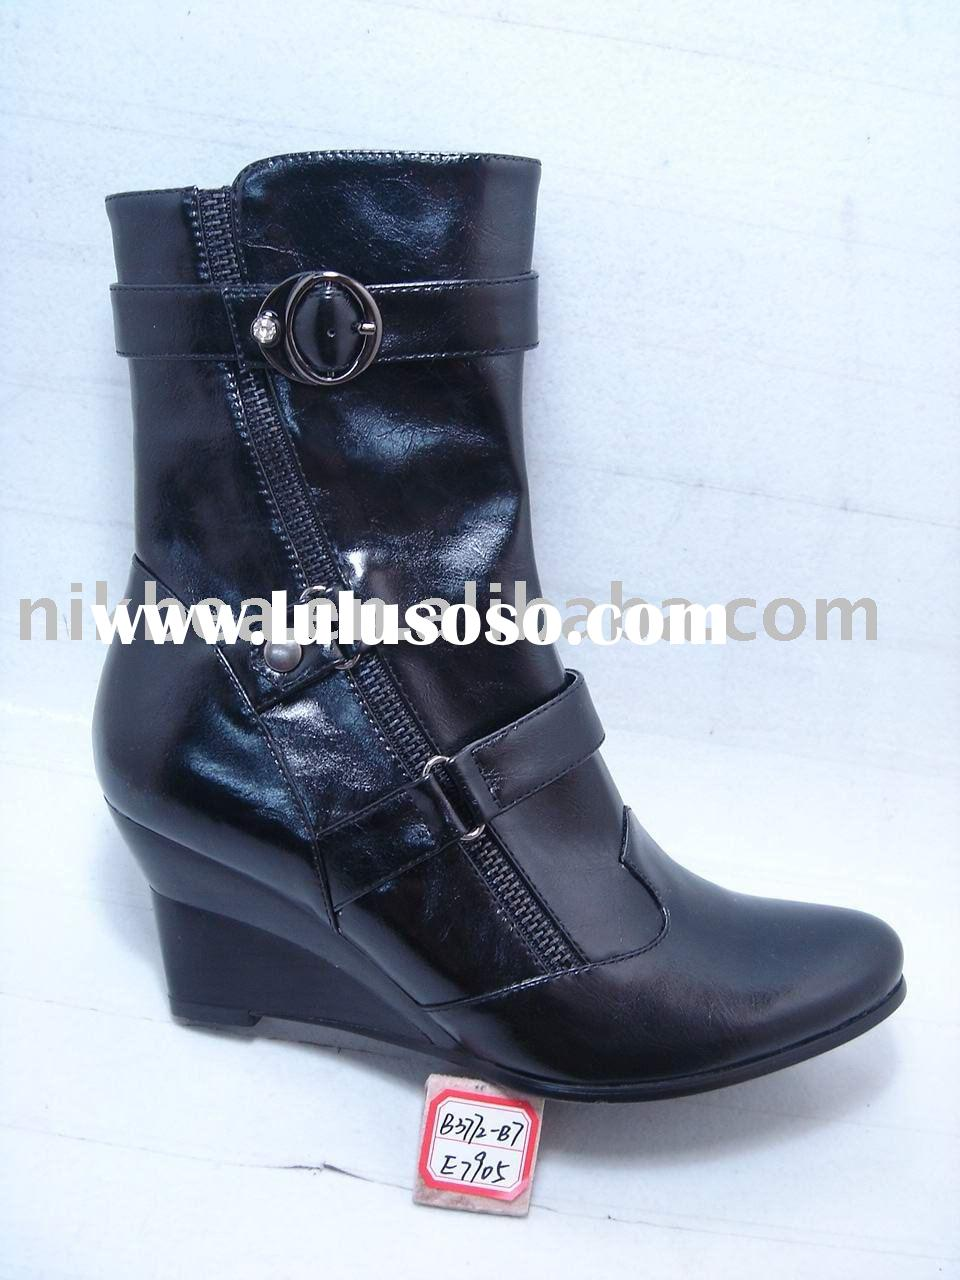 new design hot nice fashion comfort middle heel lady shoes and boots for wholesale